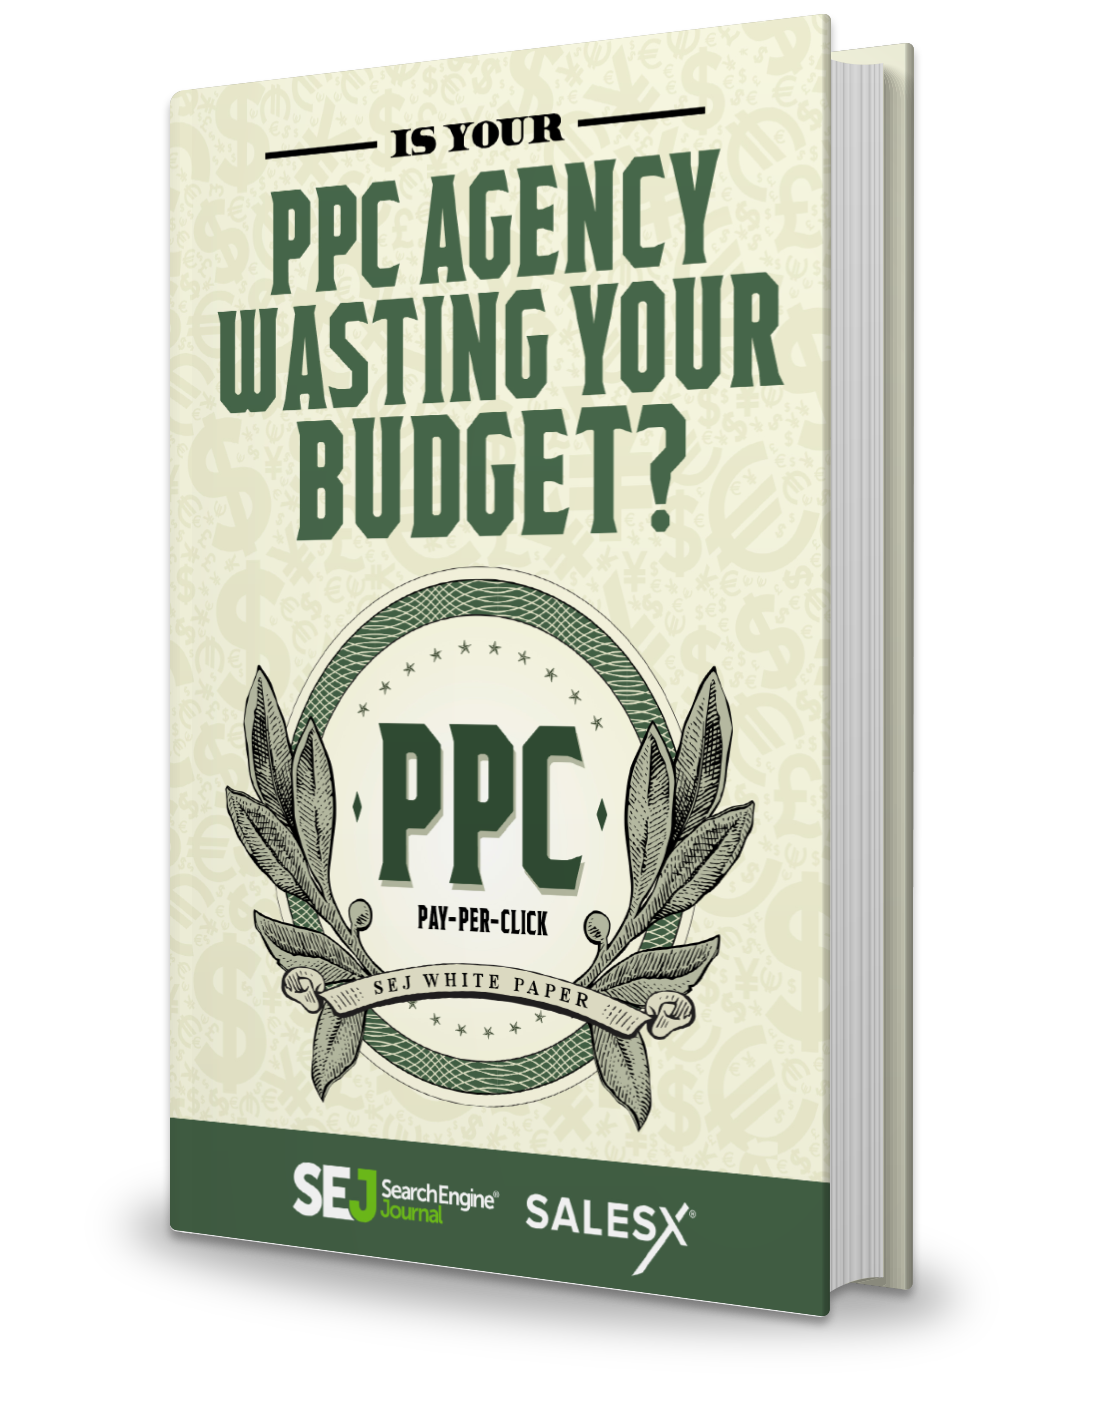 Is Your PPC Agency Wasting Your Budget? [NEW]